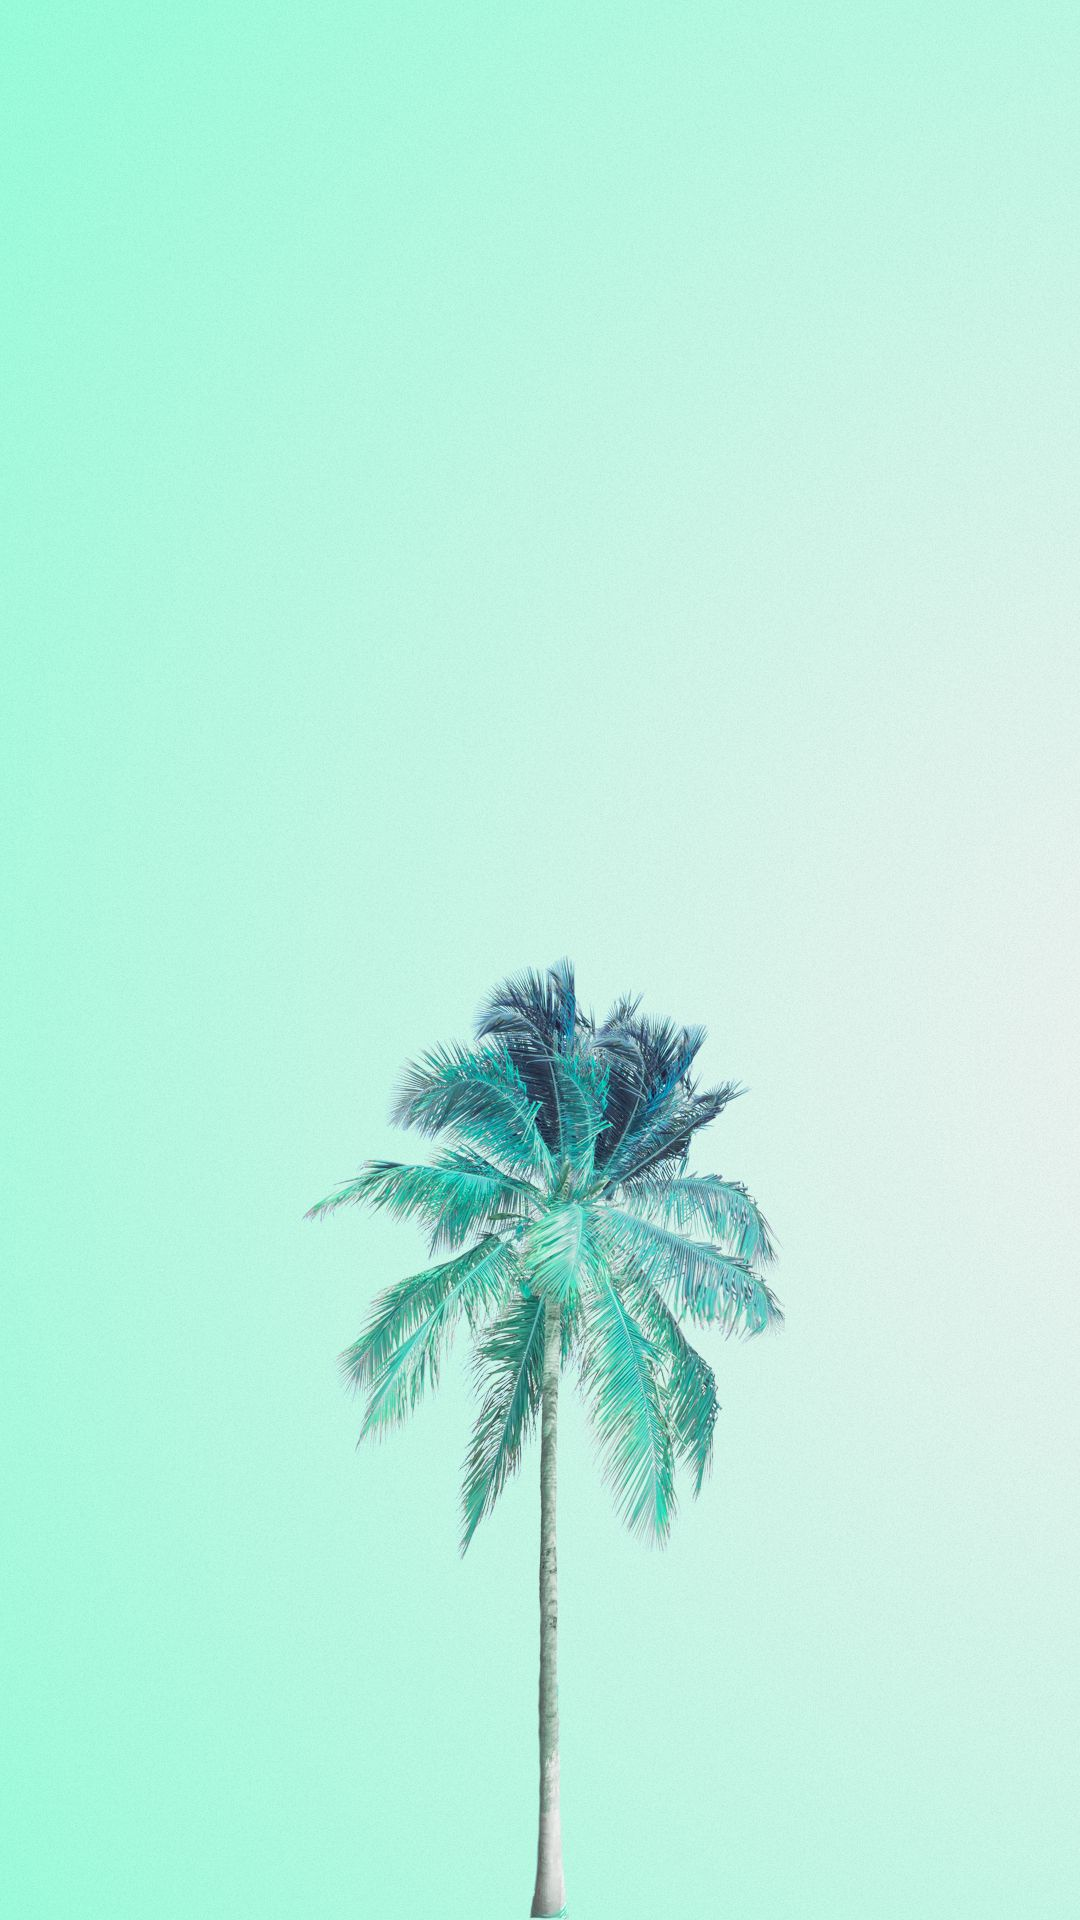 Minimalist iphone wallpaper tumblr - Mojito Palm Mint Green Wallpapermint Backgroundiphone Backgroundsiphone Wallpapersminimalist